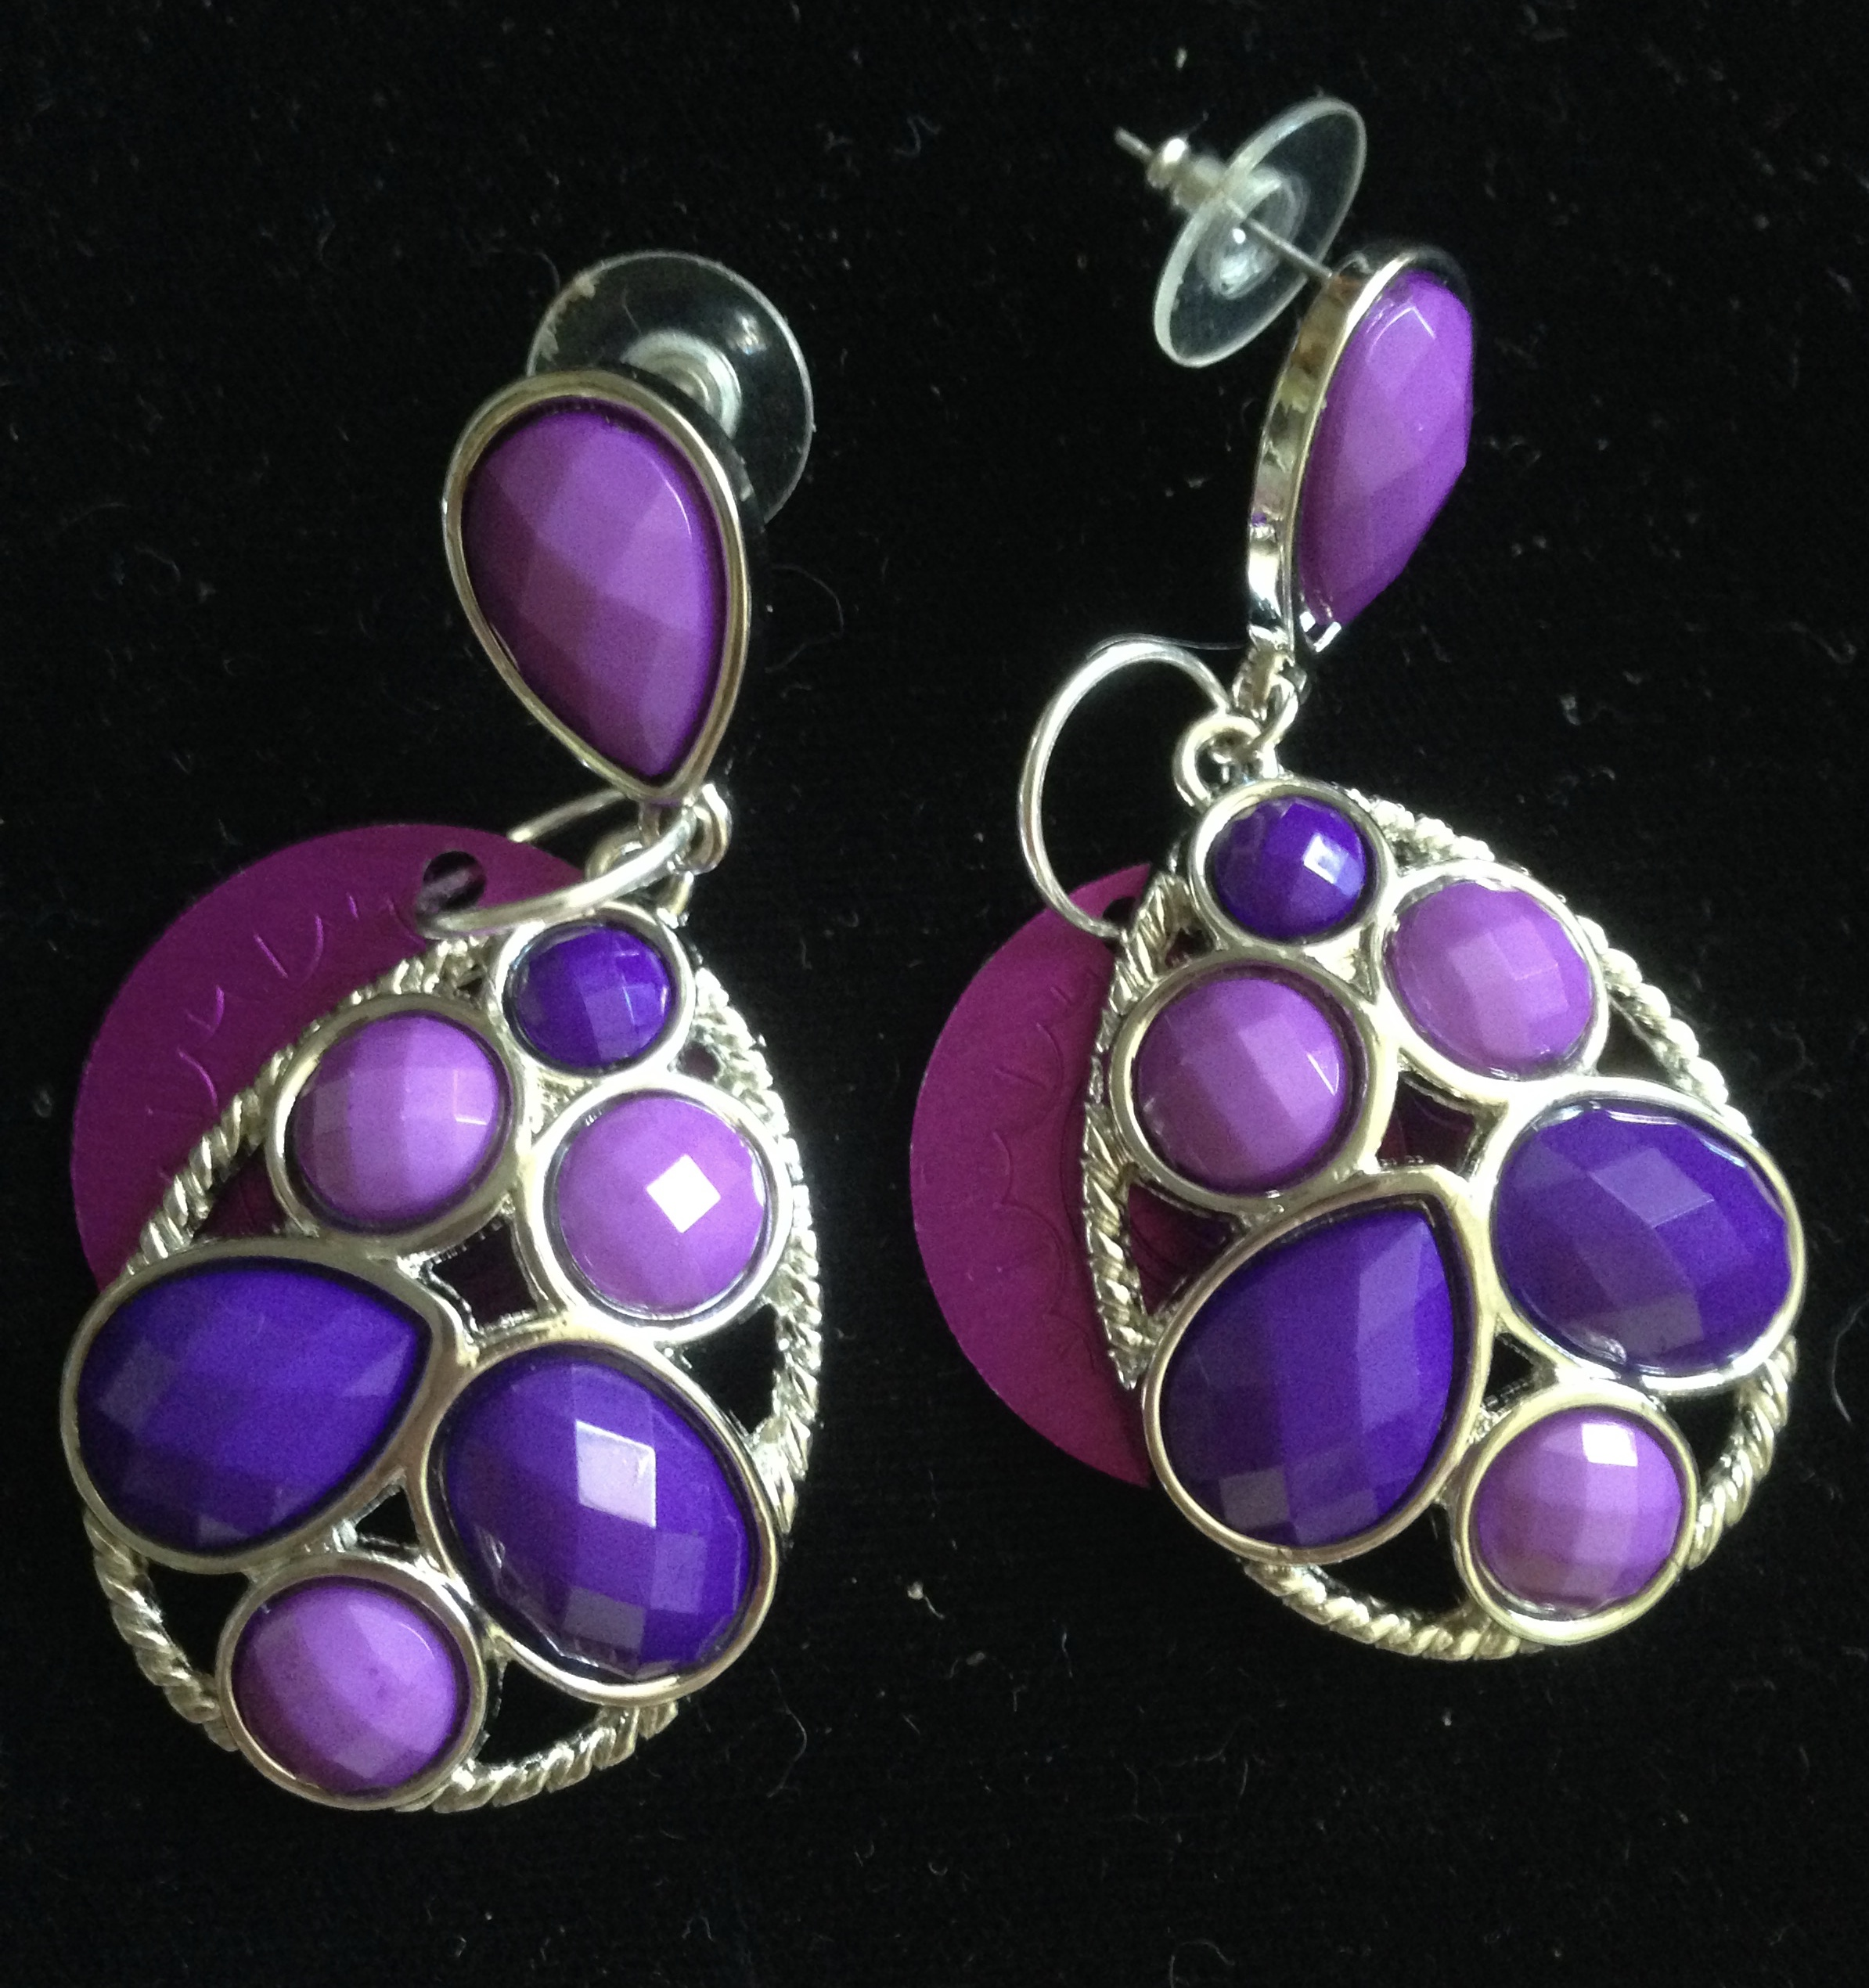 SALE: Purple Power Earrings with Purple Disks